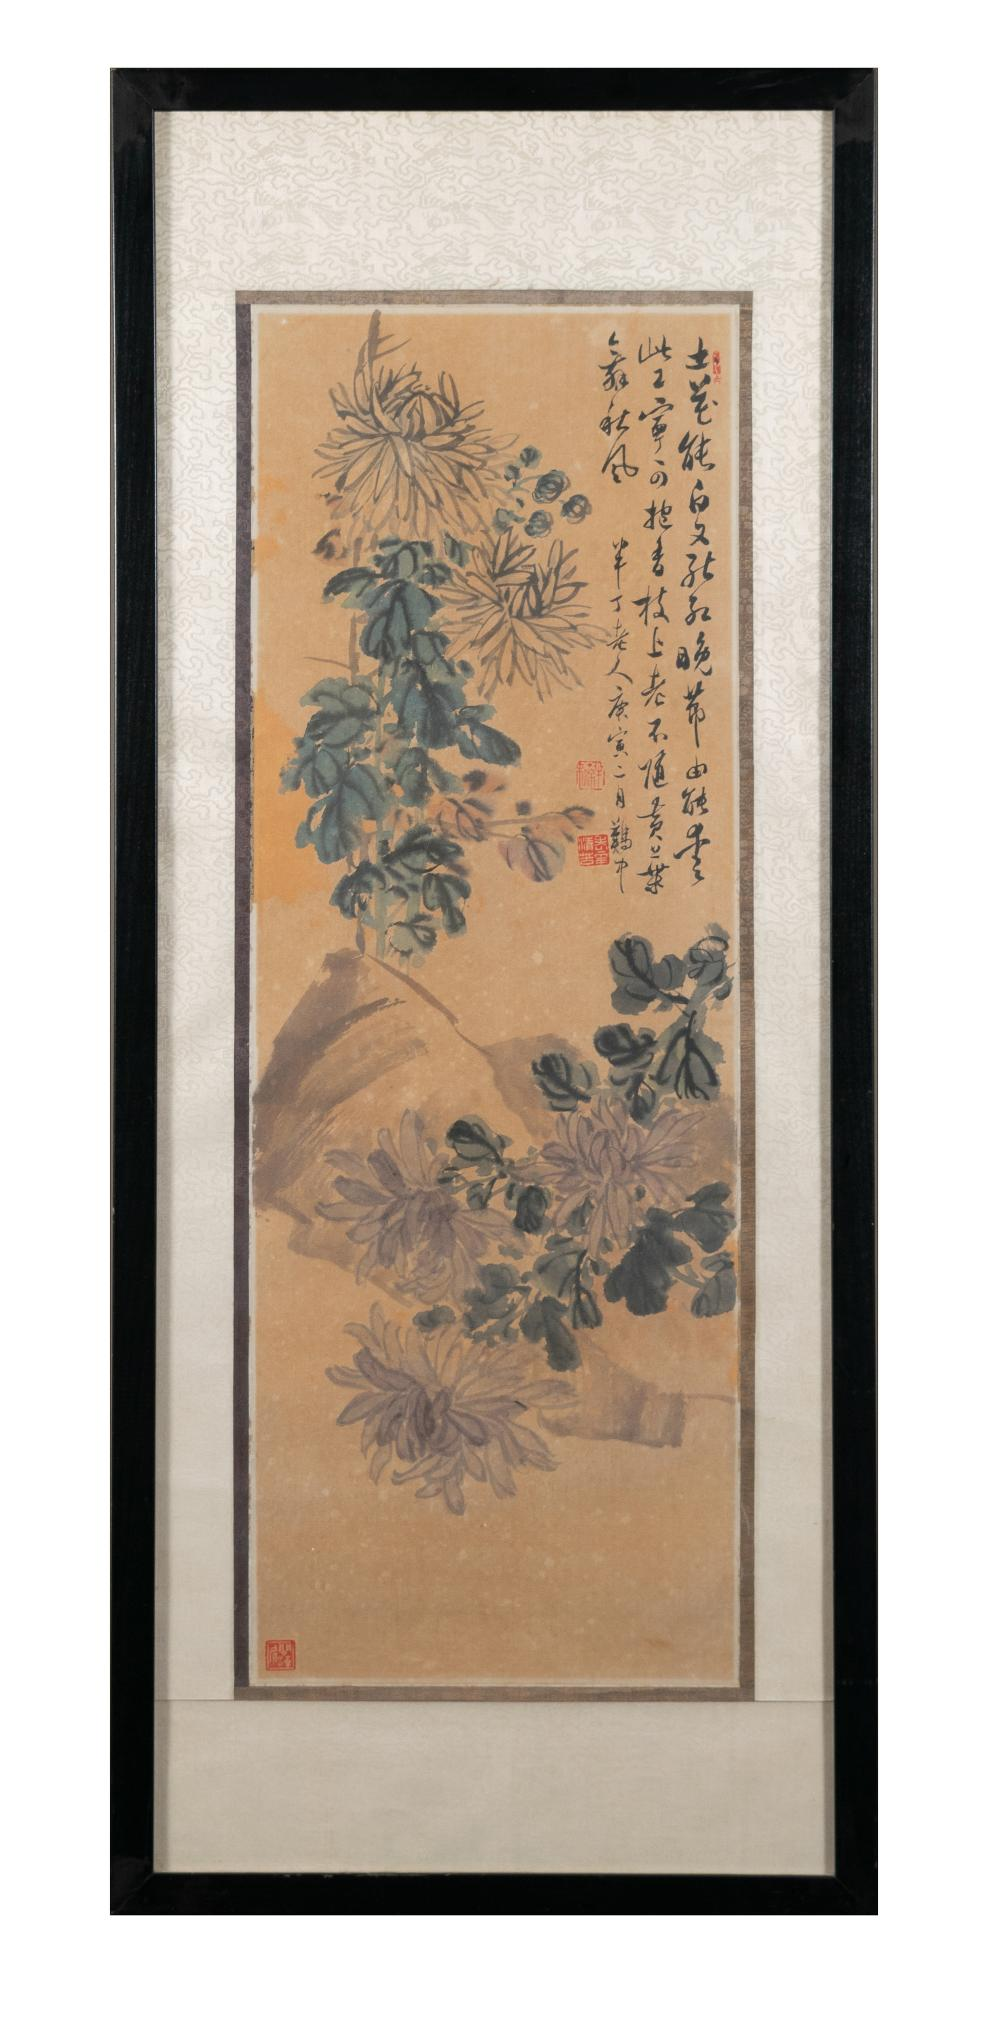 CHINESE PAINTING OF FLOWERS BY CHEN BANDING